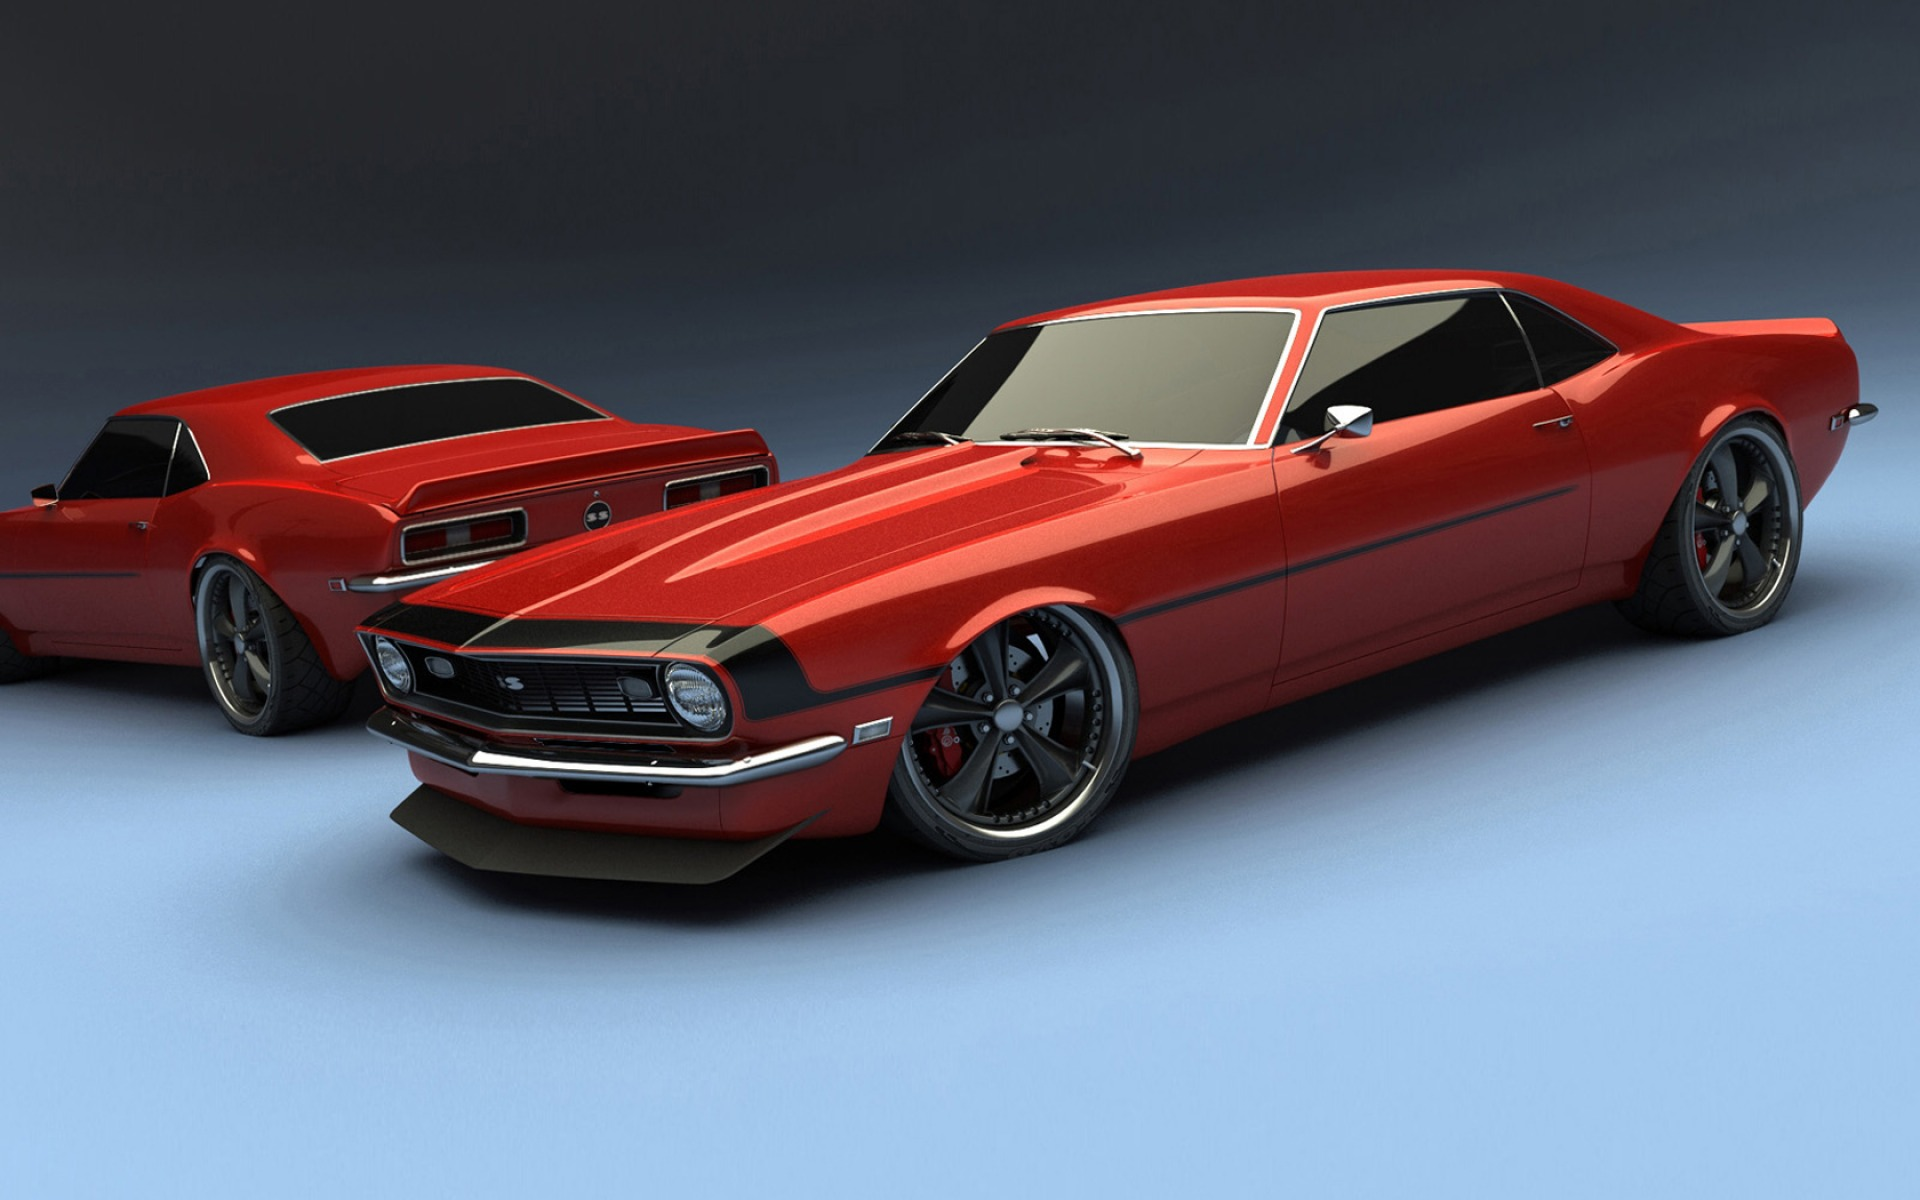 Muscle Cars Camaro Wallpaper Hd Free Download